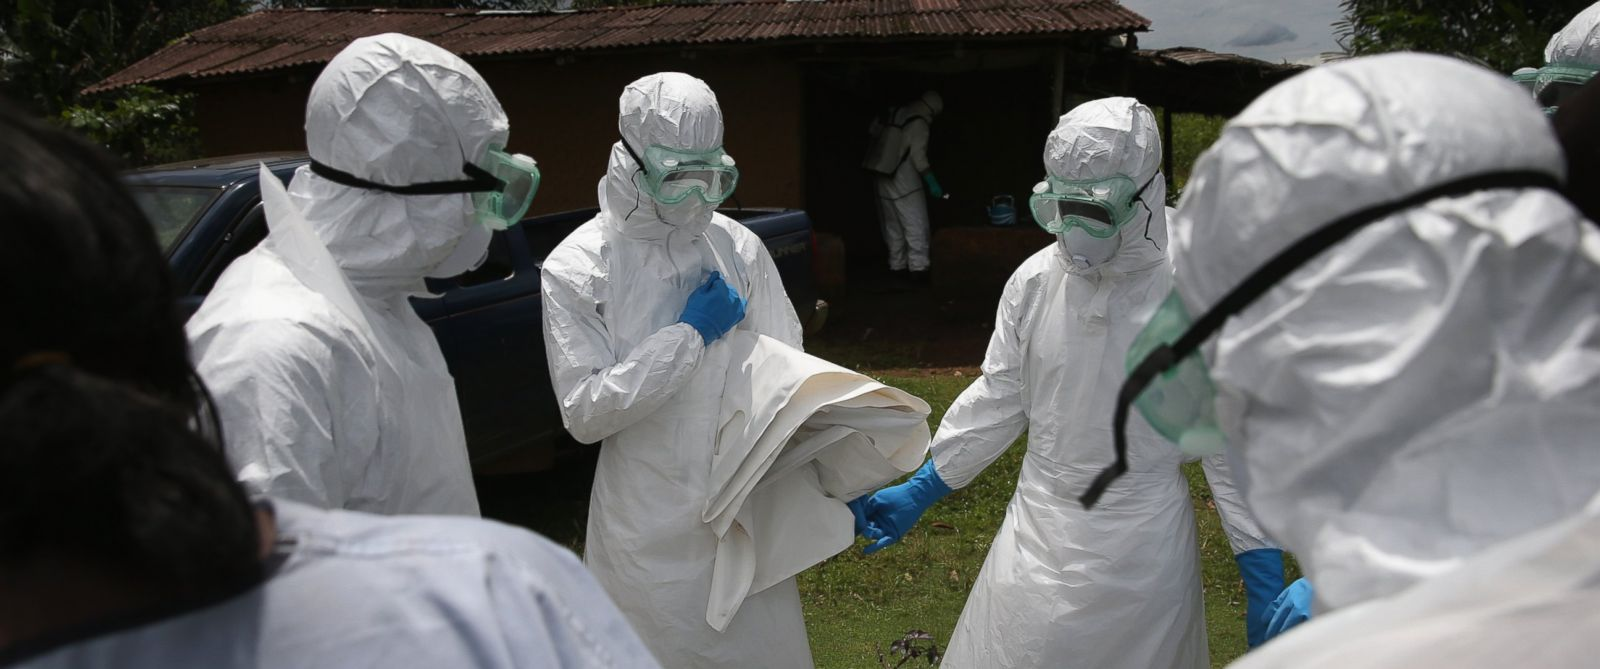 PHOTO: A burial team from the Liberian Red Cross prays before collecting the body of an Ebola victim from his home, Oct. 8, 2014 near Monrovia, Liberia.